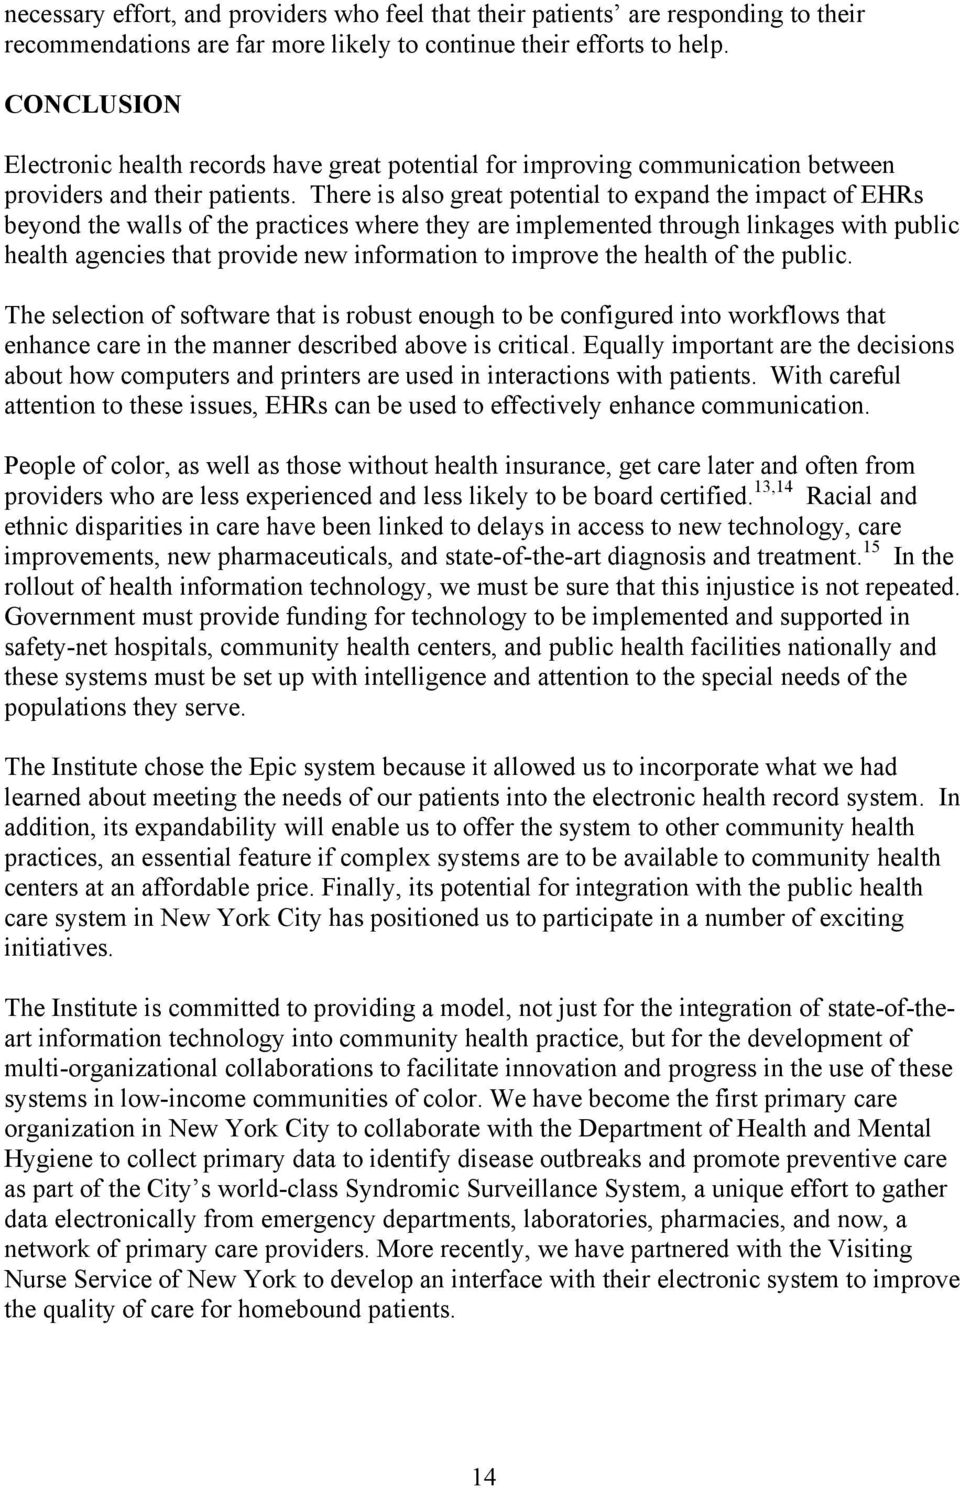 There is also great potential to expand the impact of EHRs beyond the walls of the practices where they are implemented through linkages with public health agencies that provide new information to